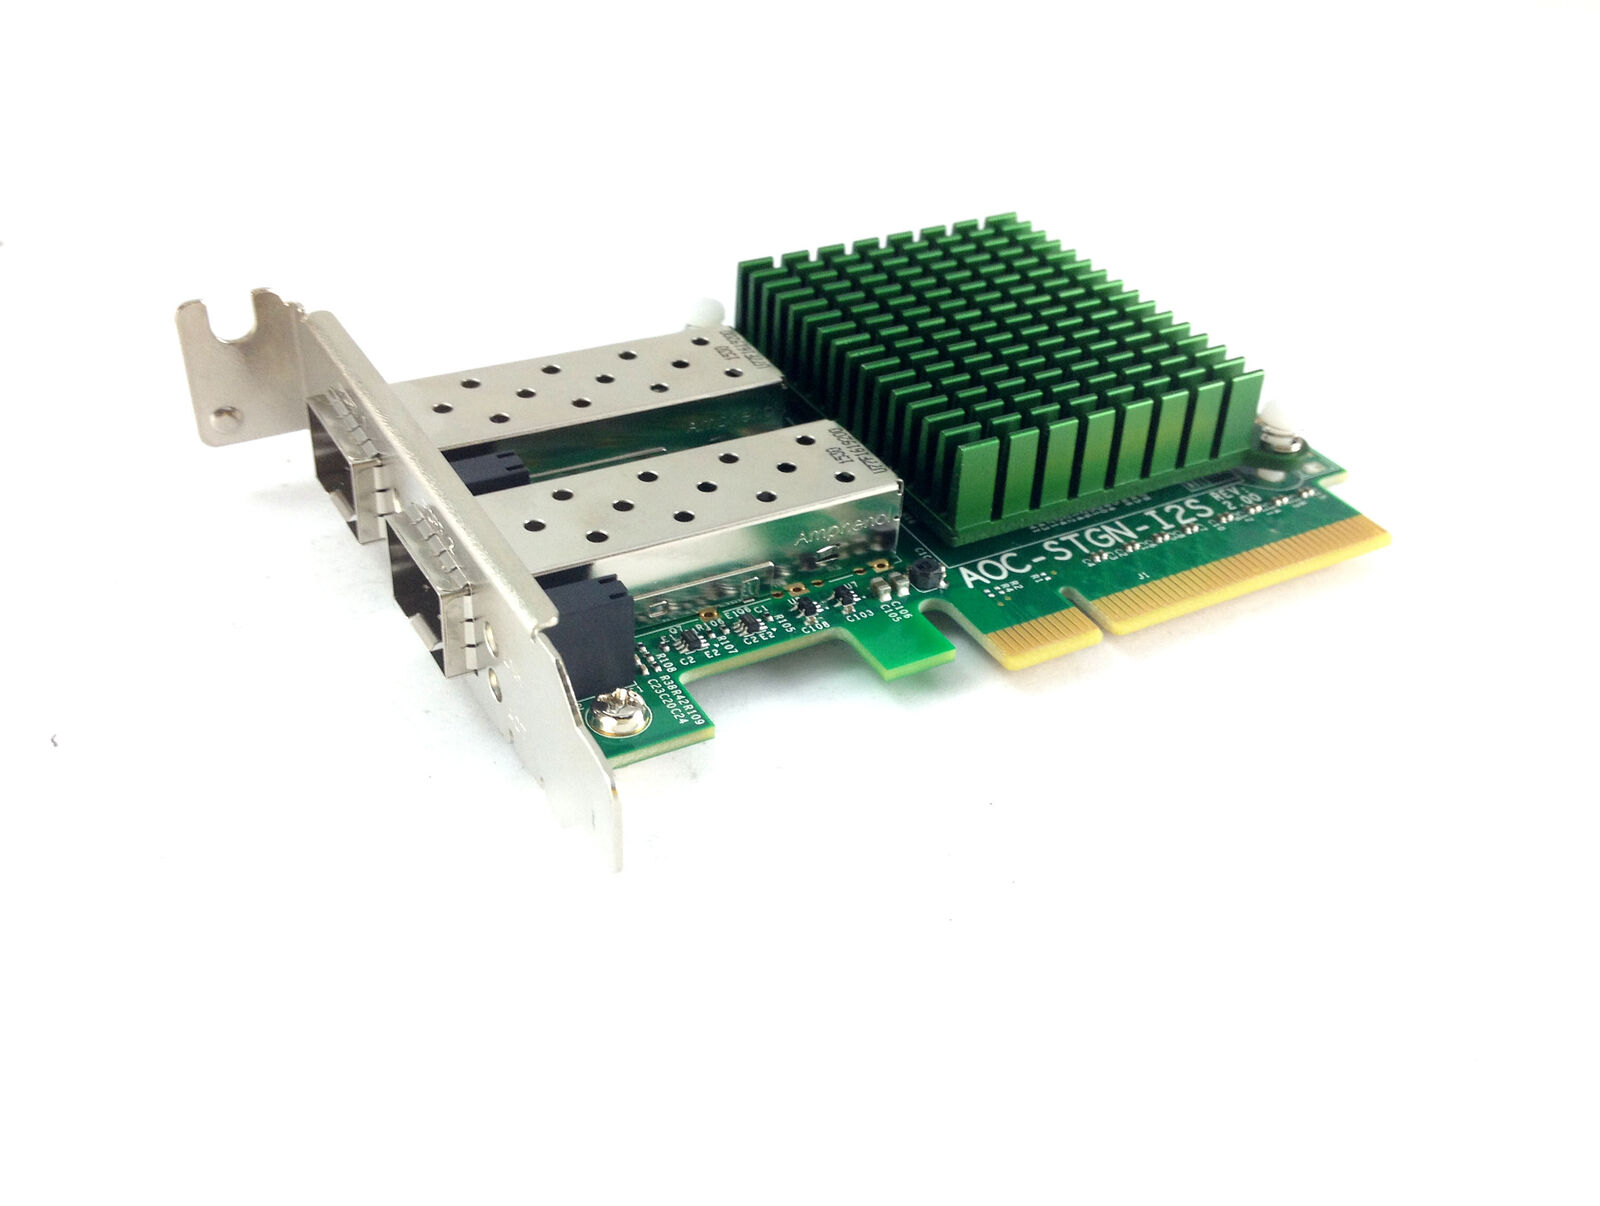 Supermicro Rev 2.0 10GbE Dual Port SFP+ Network Adapter Card Intel 82599 (AOC-STGN-I2S)